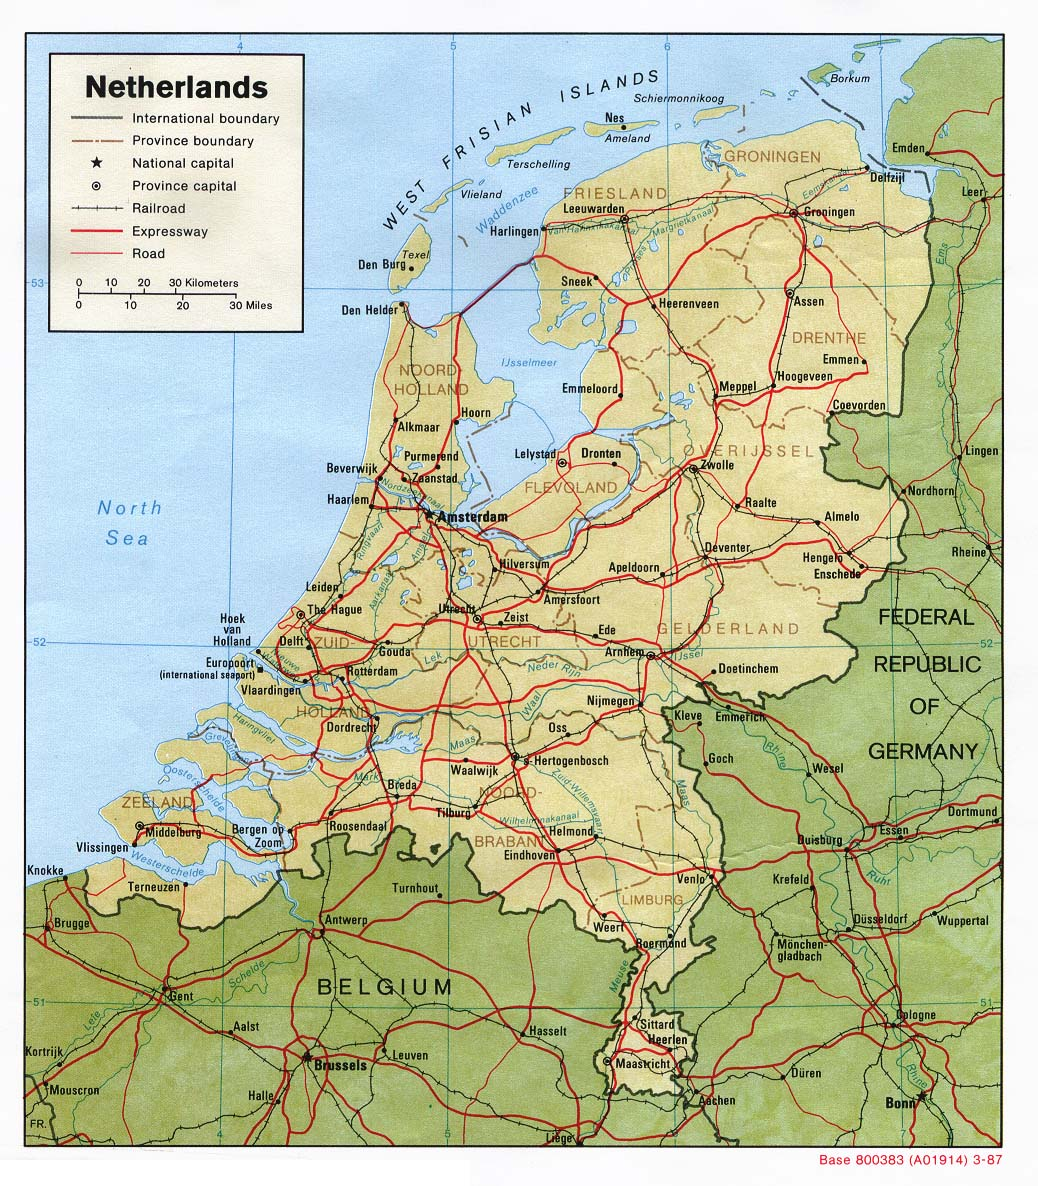 Map of Netherlands A Source for All Kinds of Maps of Netherlands